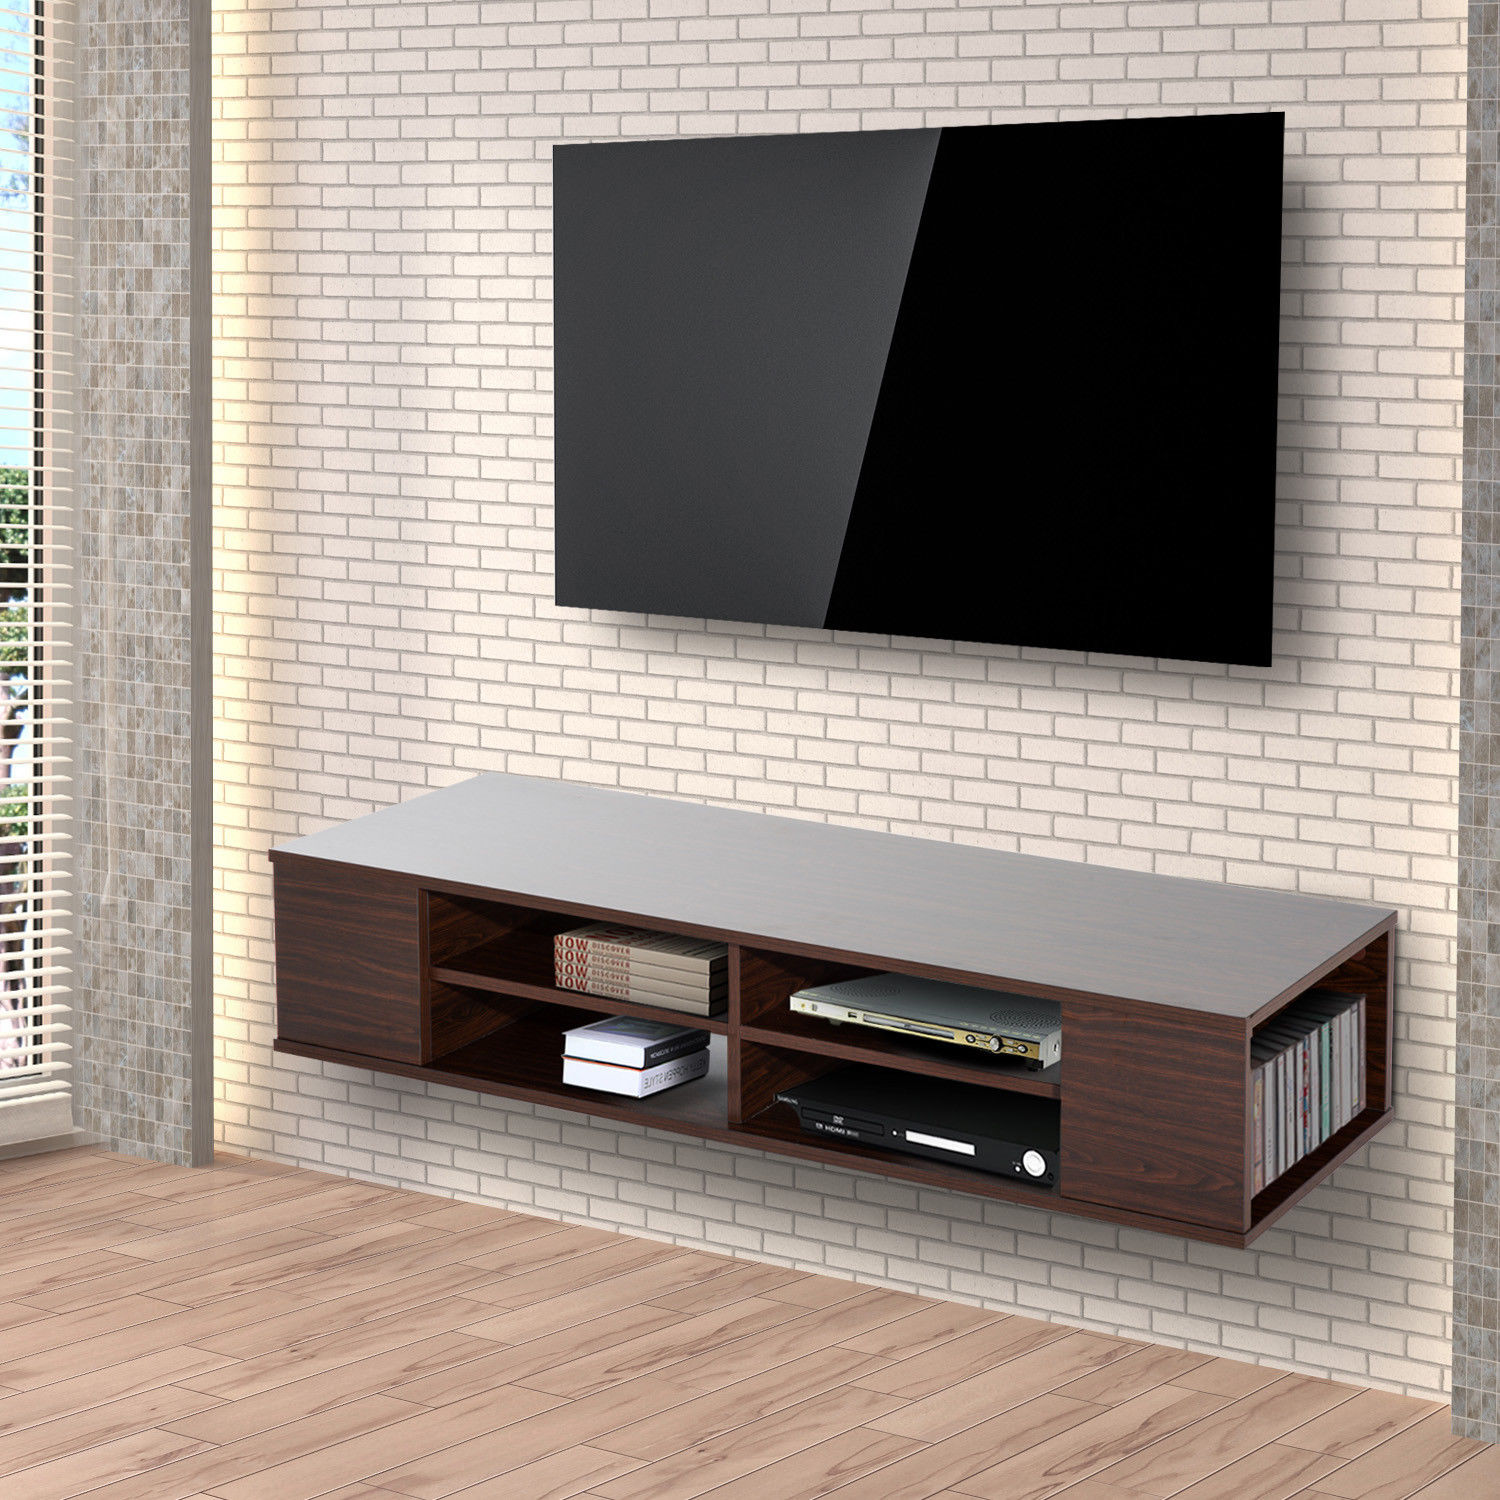 modern 47 floating wall mounted tv stand unit cabinet. Black Bedroom Furniture Sets. Home Design Ideas